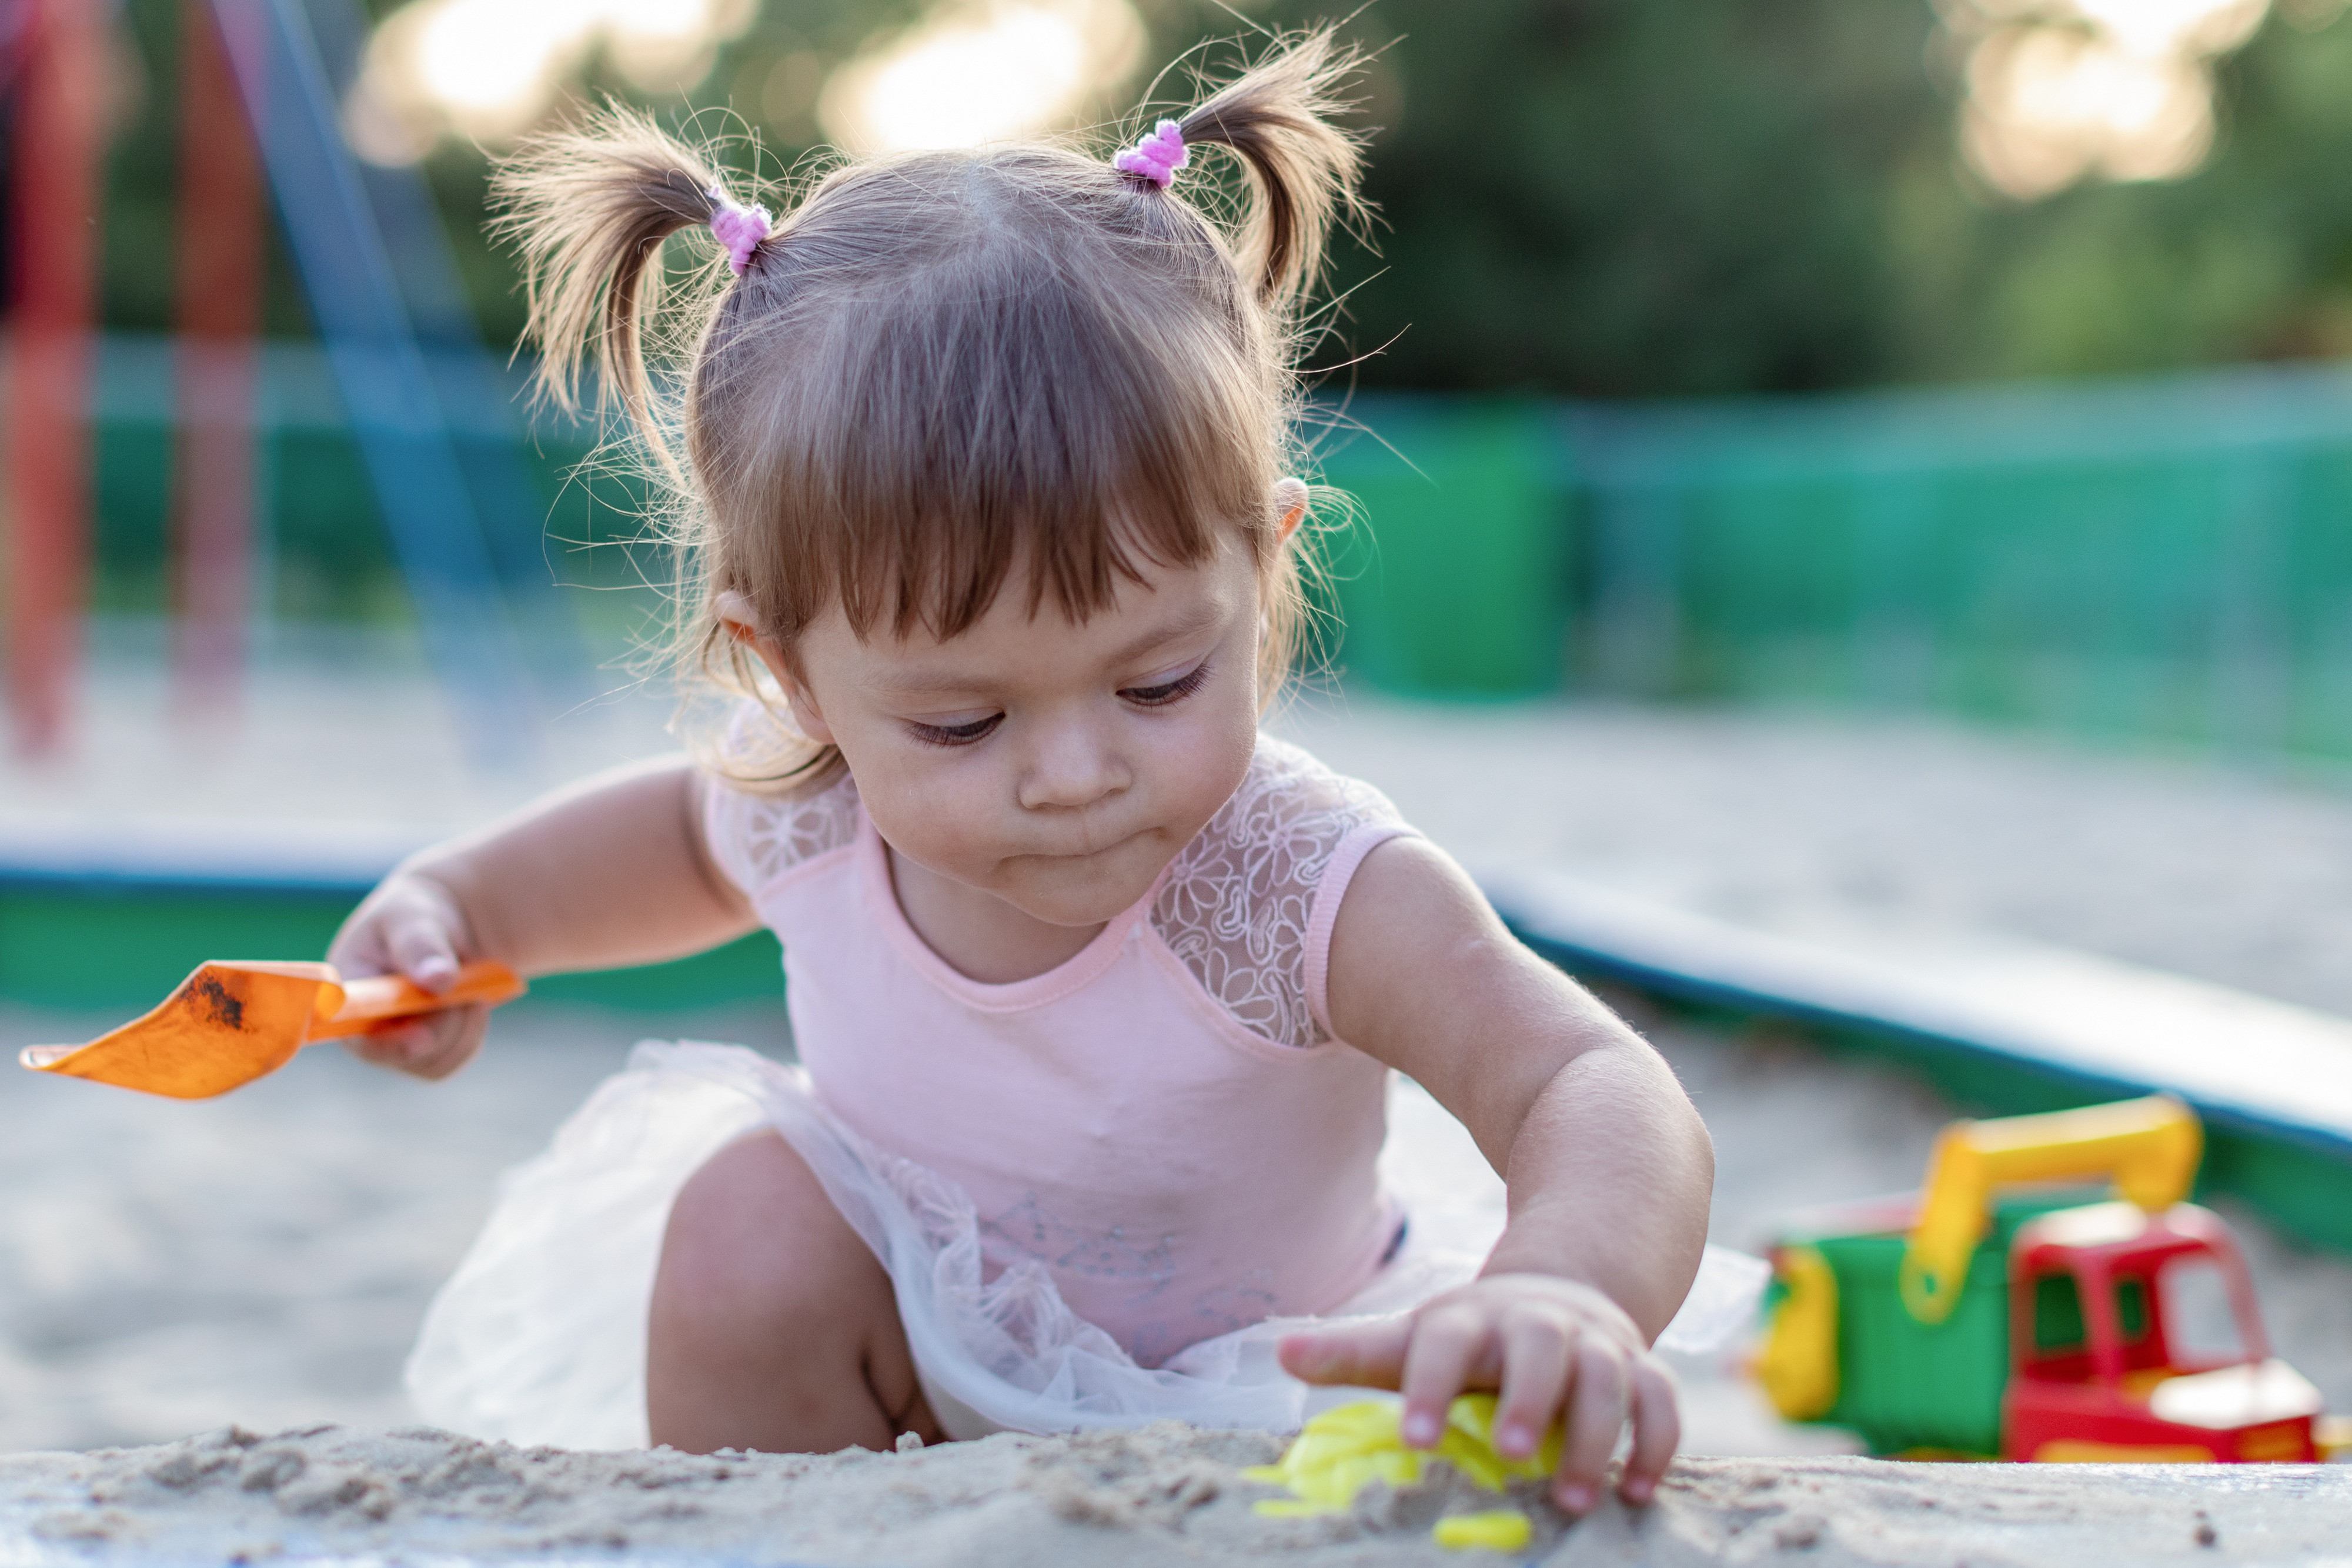 The best outdoor toys for babies are ones that encourage motor skill development and fun.